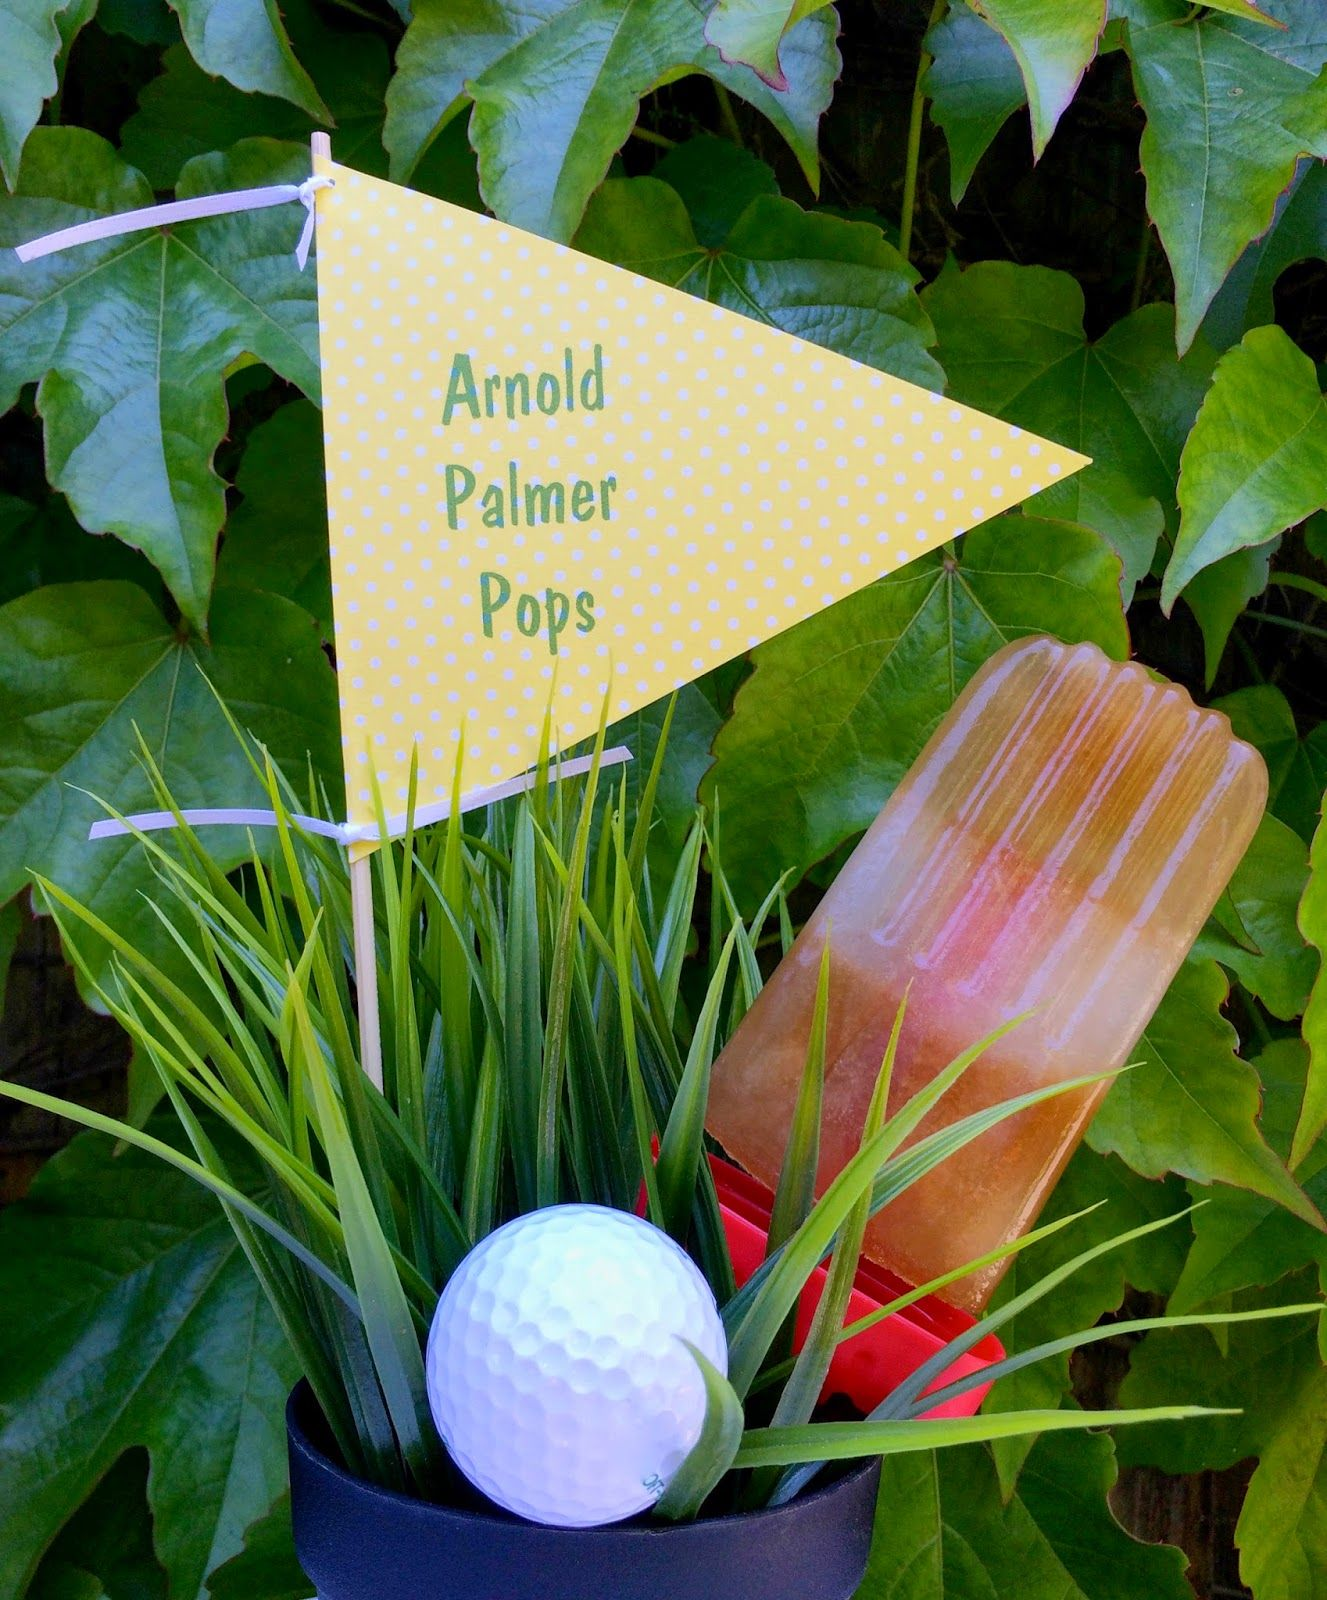 Arnold Palmer Pops - Frozen Layers of Iced Tea and Lemonade the Perfect Summer Treat